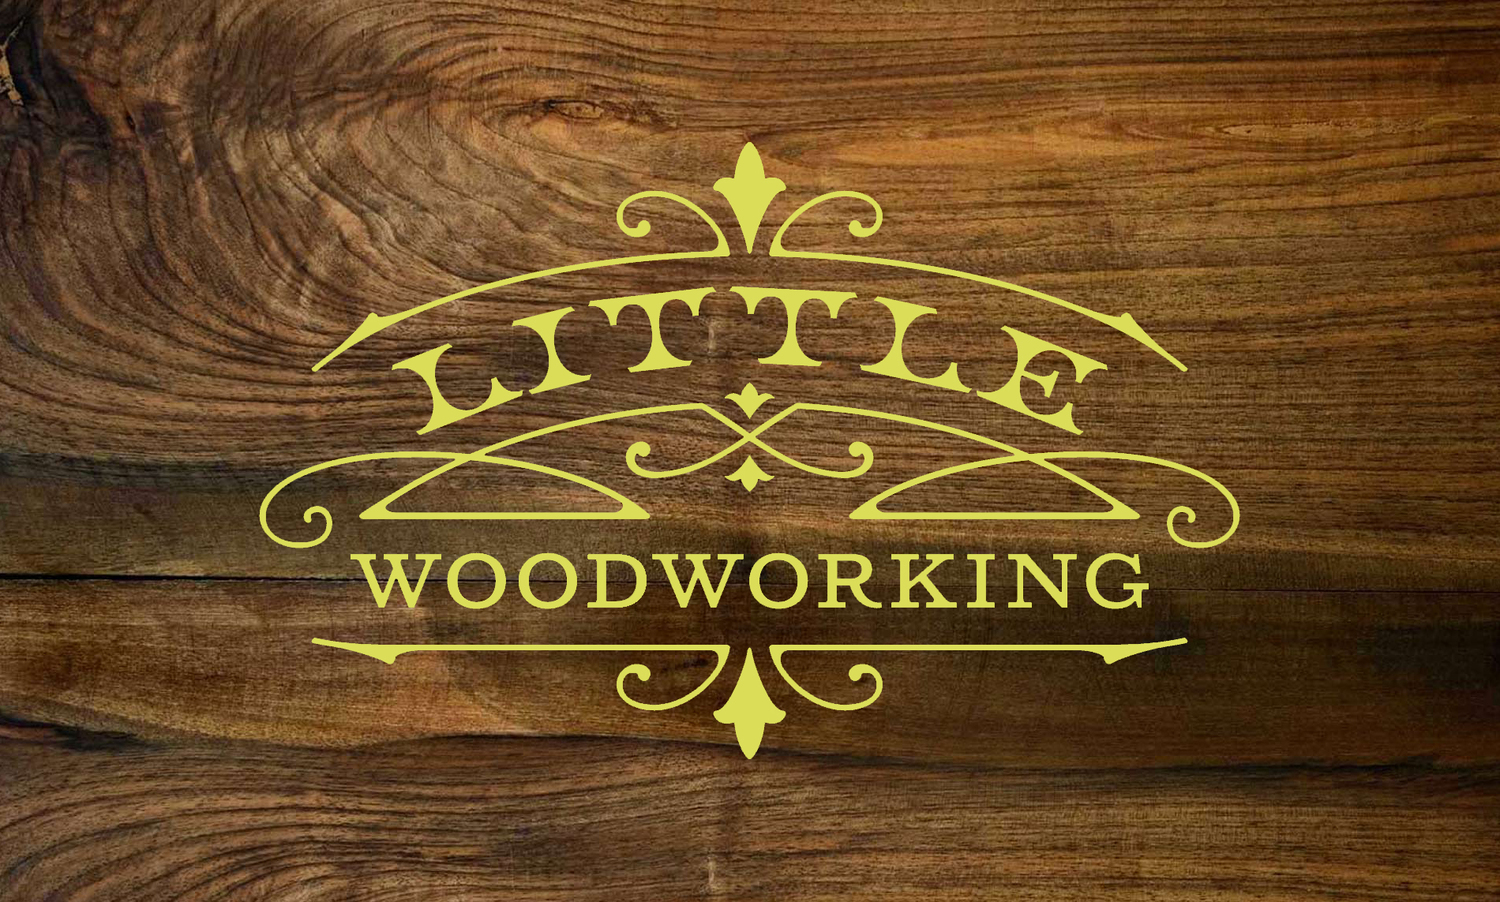 Little Woodworking: I started making toys and heirloom wood creations in the new year of 2011. Today Little Woodworking is a full time business specializing in Handmade Wood Toys, Unique creations that blend artistic vision with practical functionality…